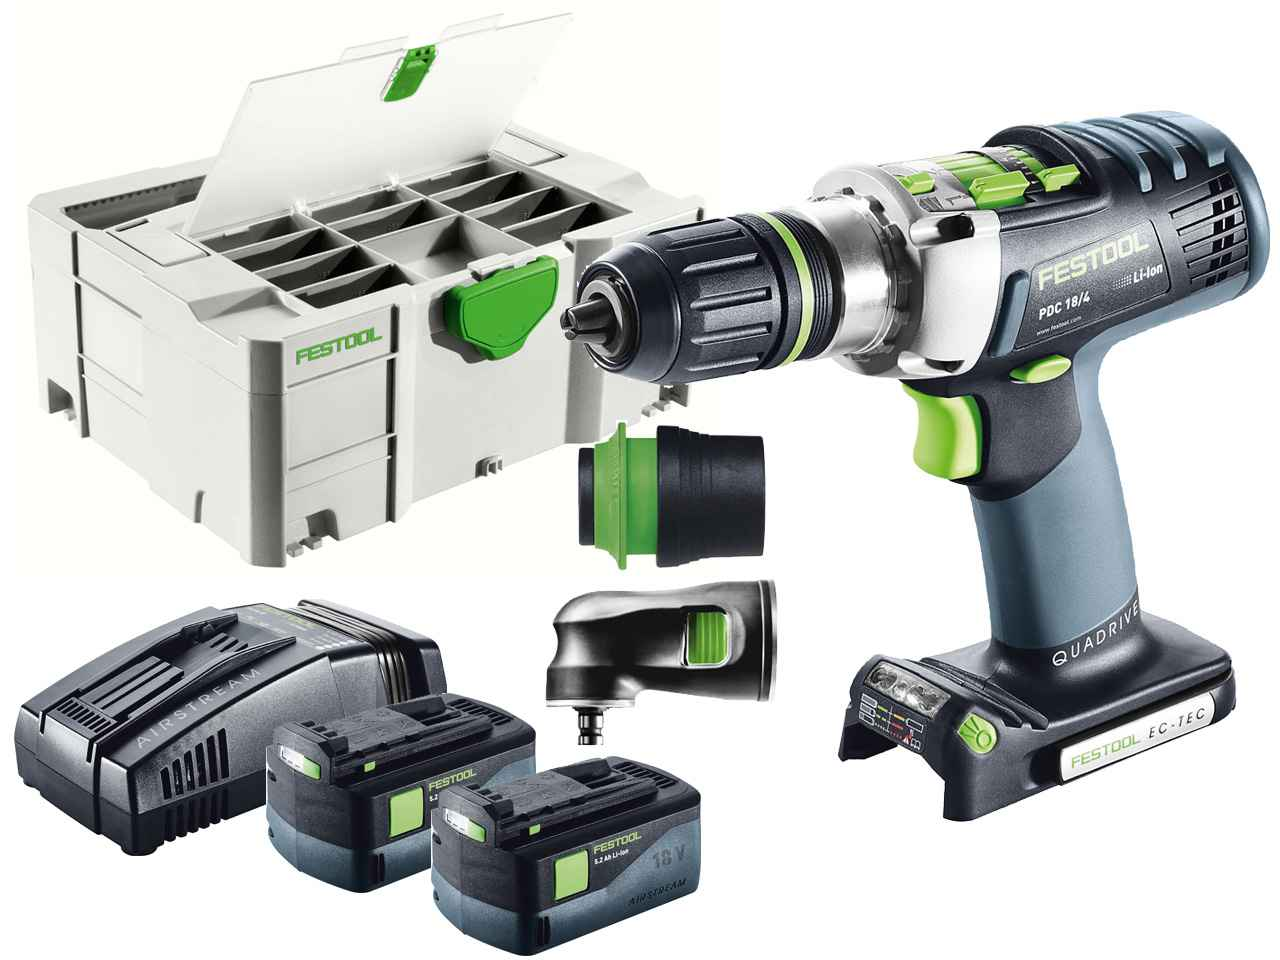 festool pdc 18 4 li 5 2 set 18v li ion percussion drill systainer 2 df. Black Bedroom Furniture Sets. Home Design Ideas